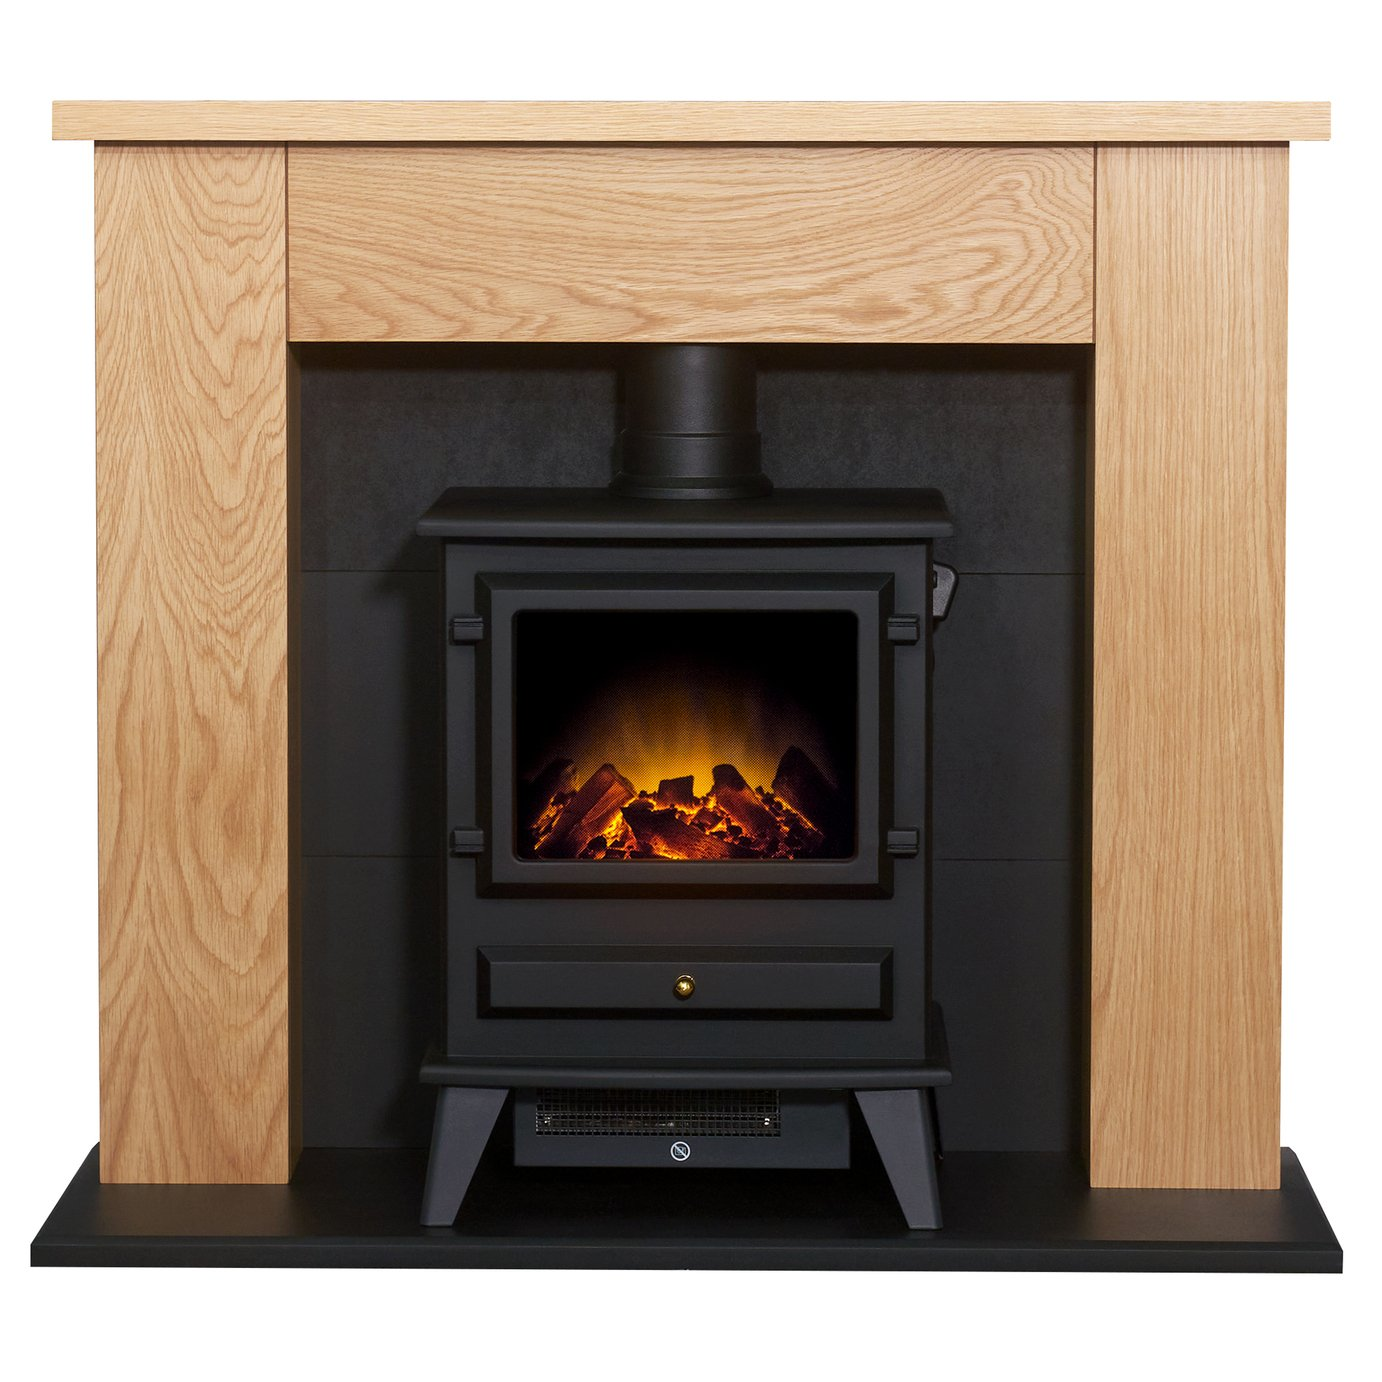 buy fireside companion sets fireguards and accessories at. Black Bedroom Furniture Sets. Home Design Ideas